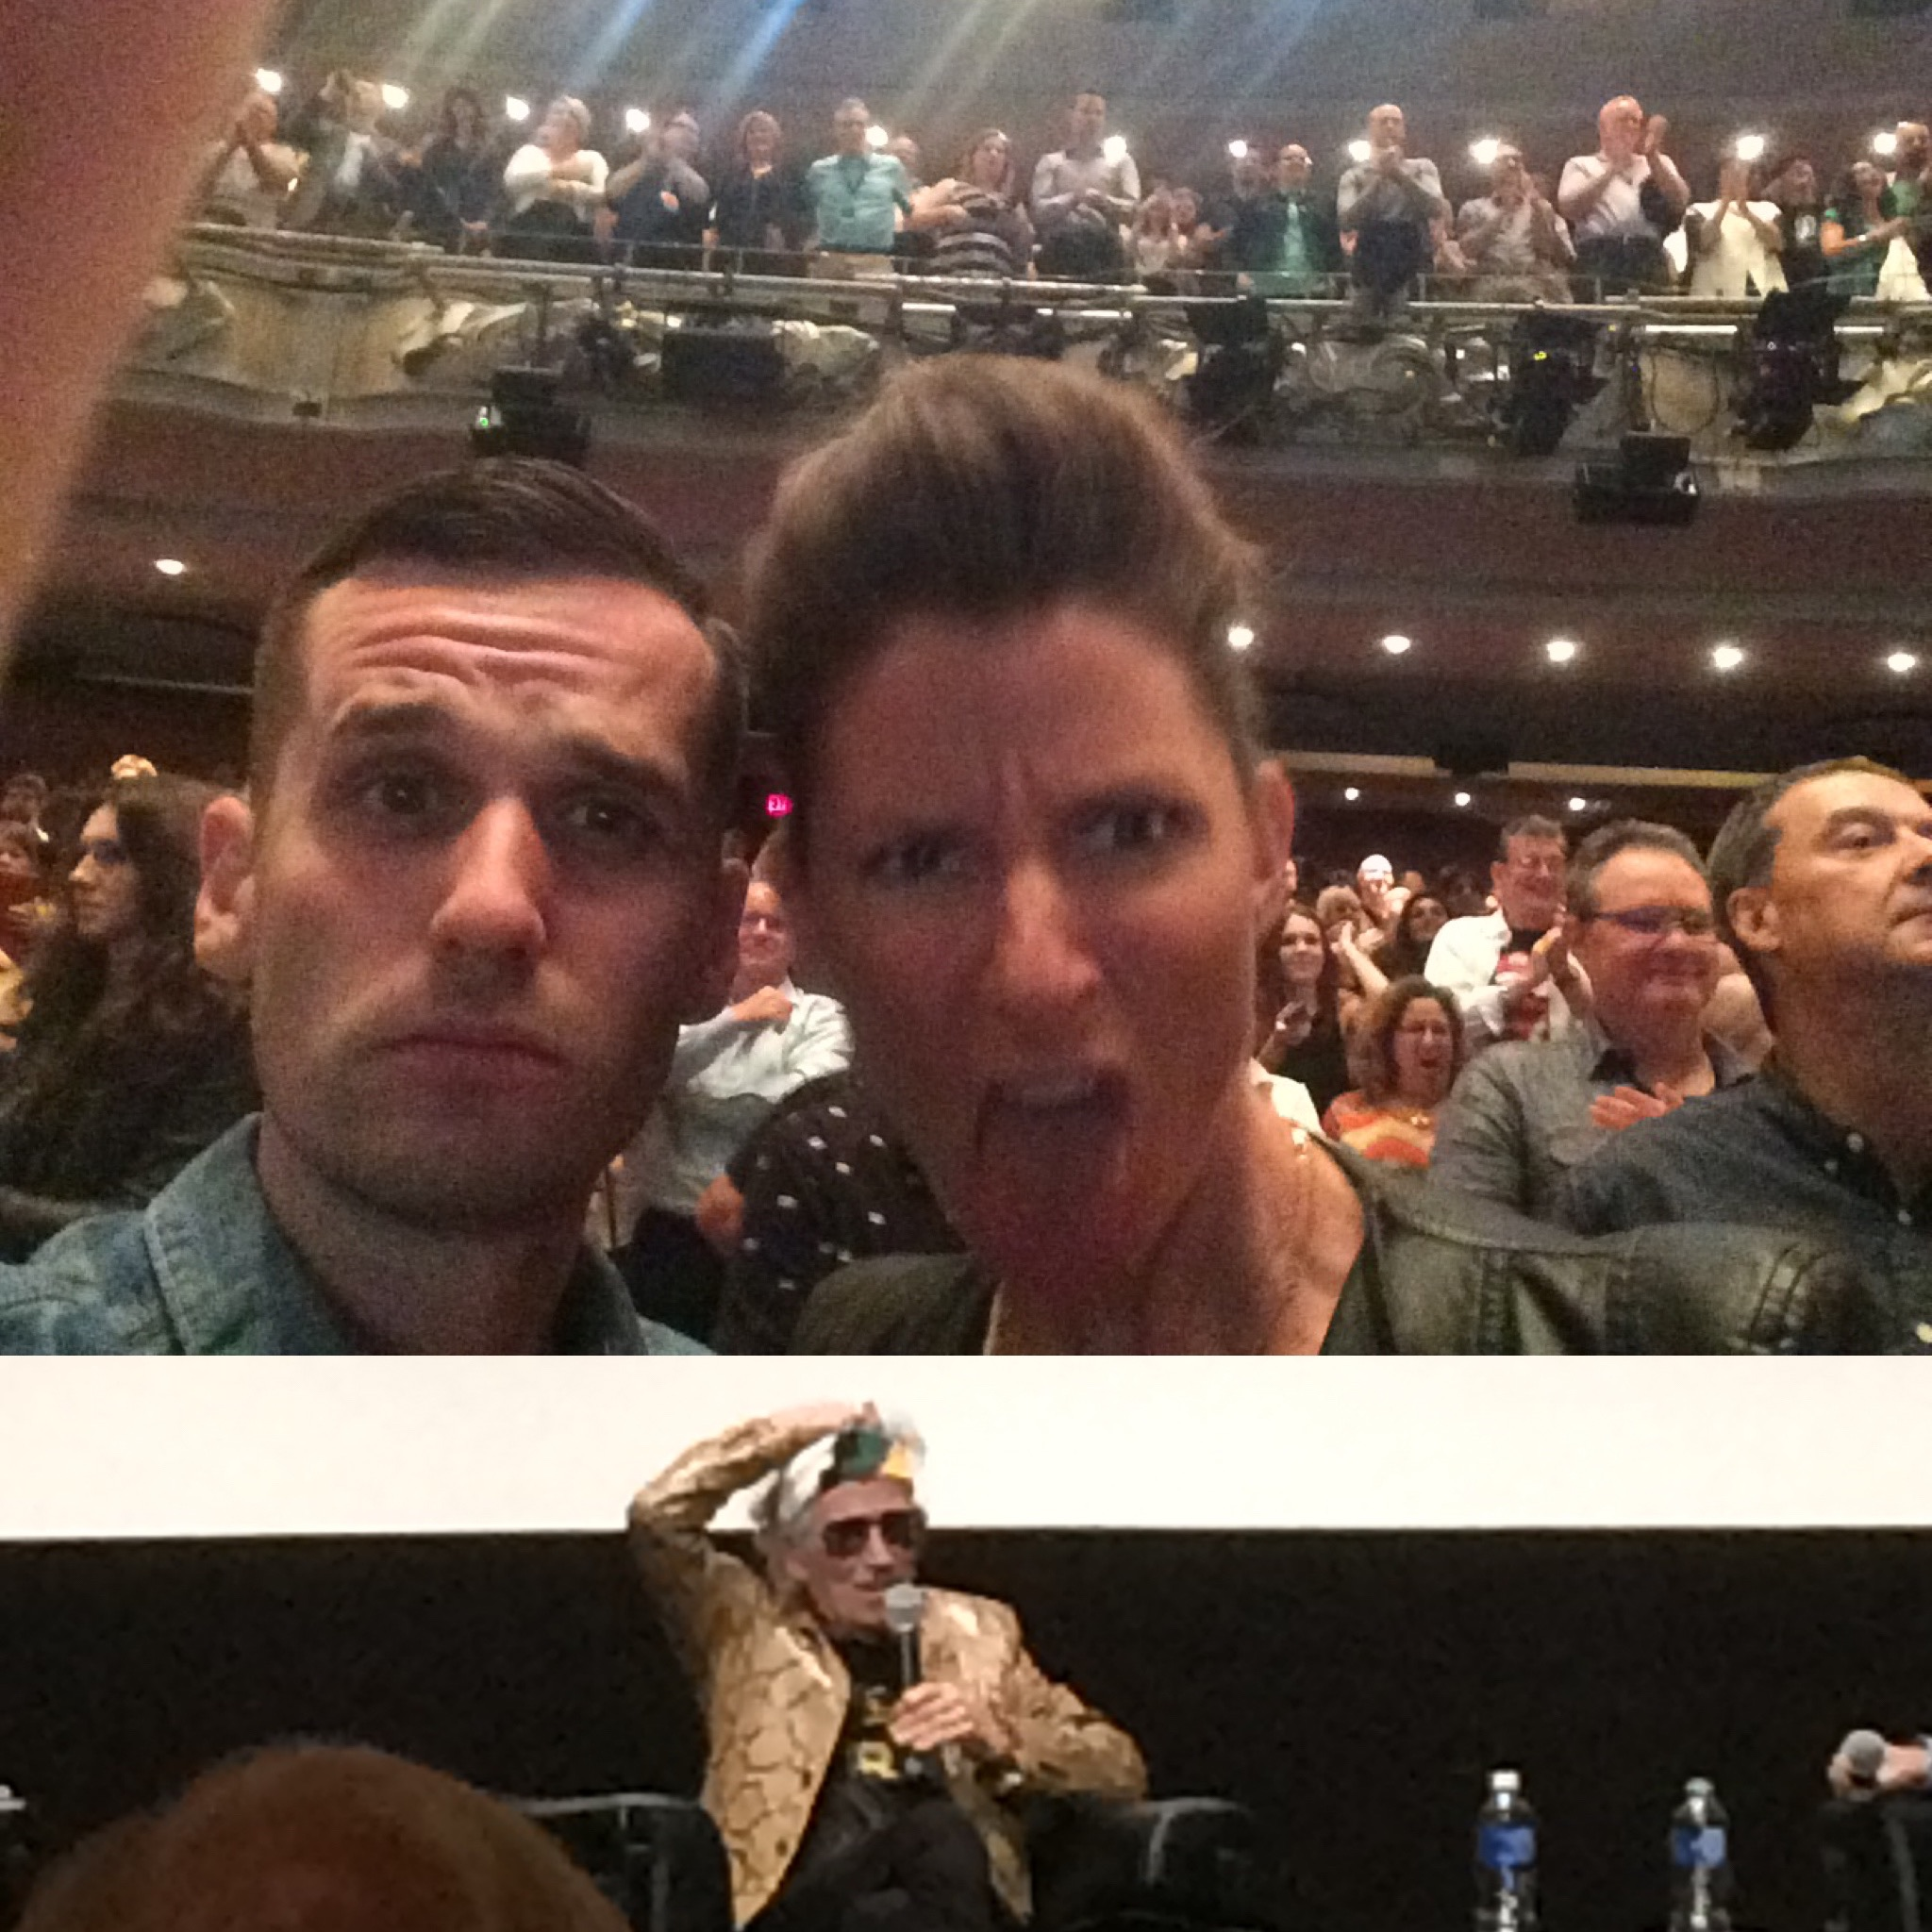 My wife and I rocking out to a standing ovation with Keith Richards